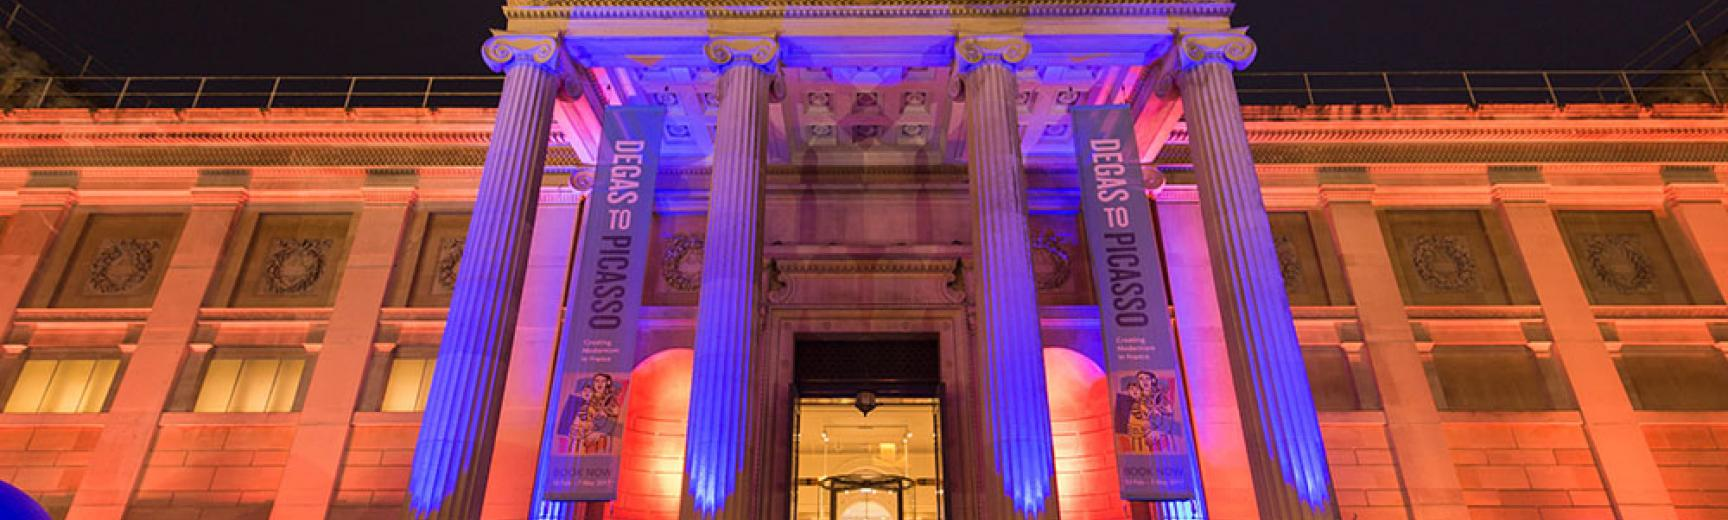 Ashmolean Venue Hire – The Museum's Exterior Lit Up